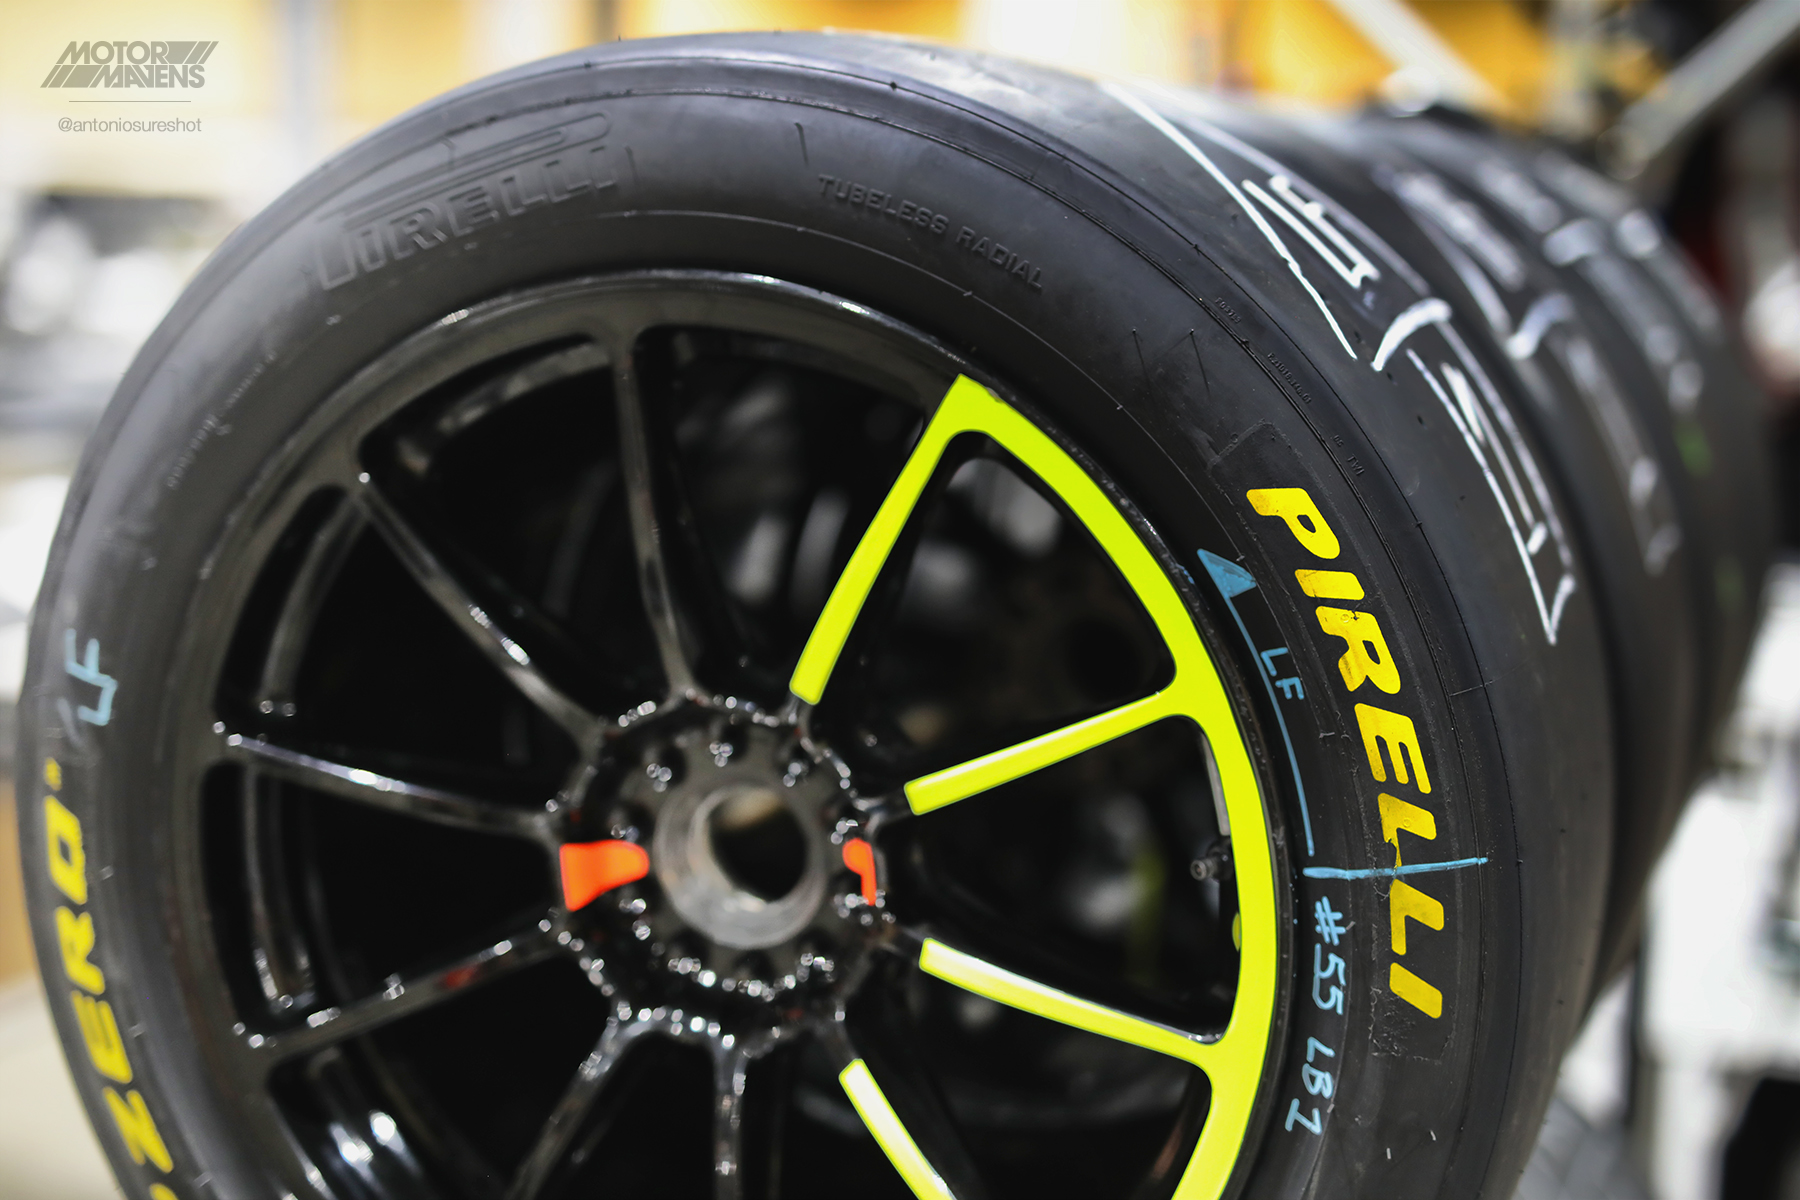 Pirelli, Pirelli PZero, Lamborghini, Huracan GT3, Pirelli World Challenge, Long Beach Grand Prix, Dream Racing, Yuki Harata